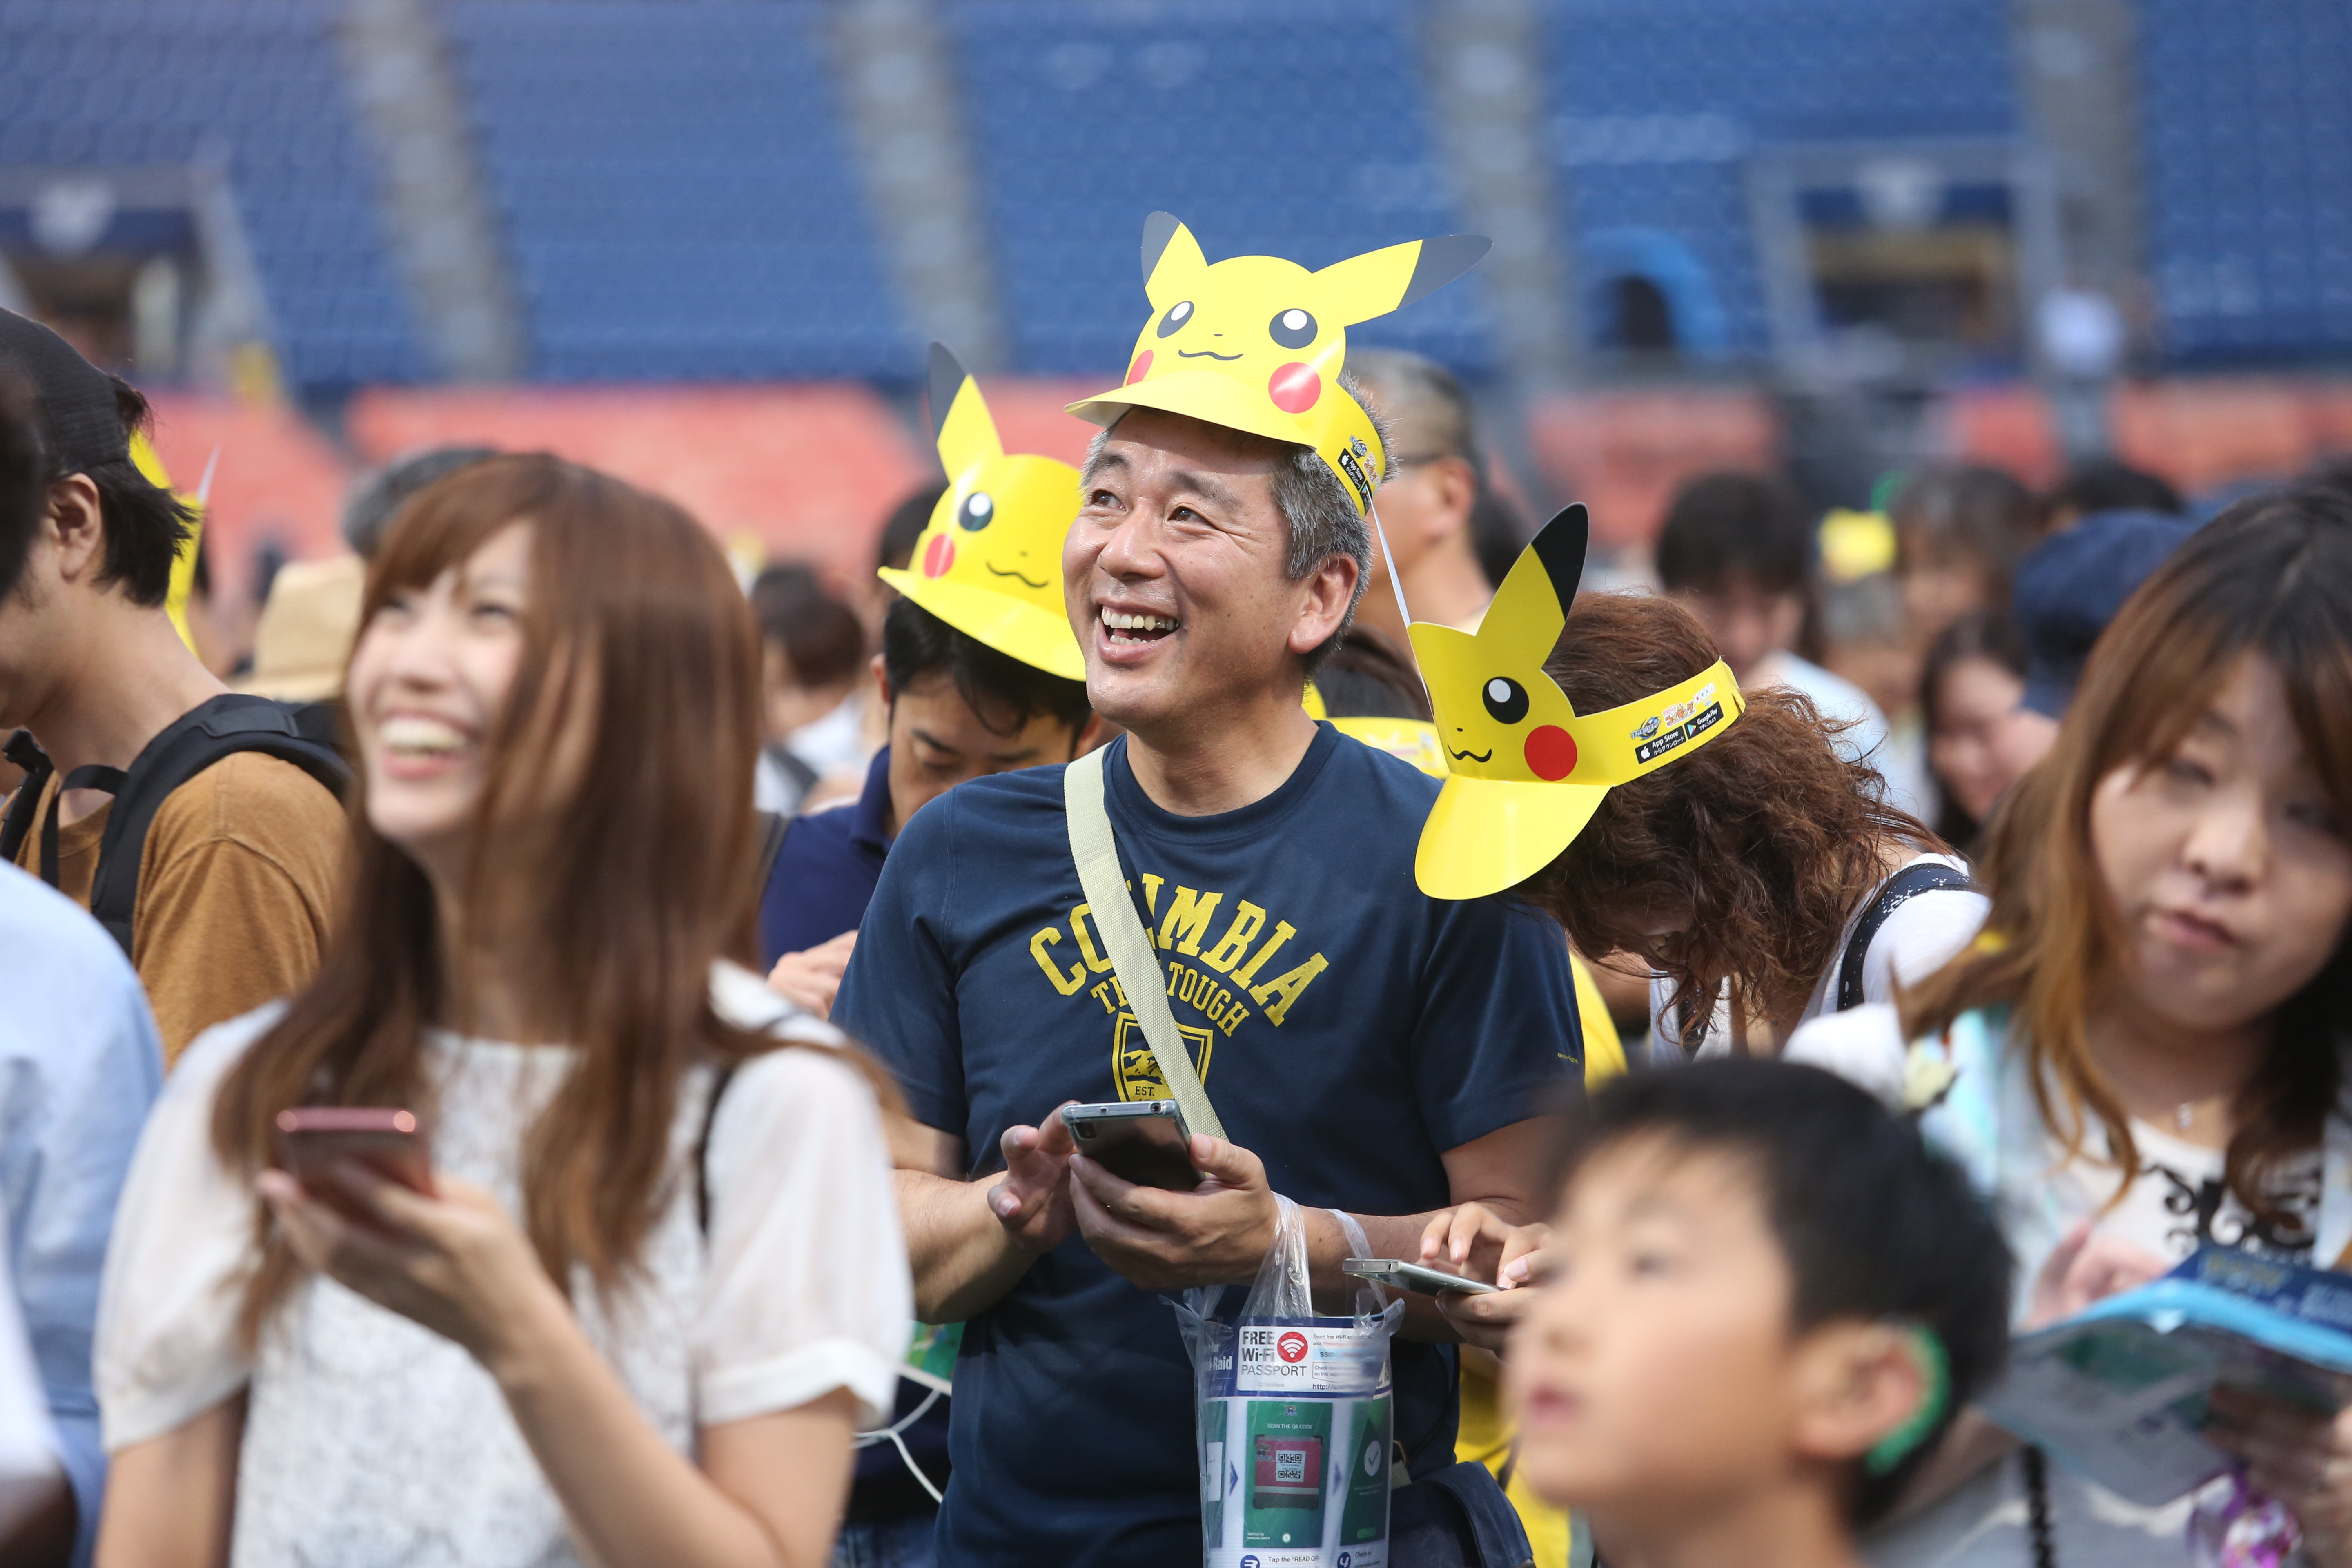 2M Players, Seven Days, One City - Pikachu Outbreak & The Future of Real World Games Events